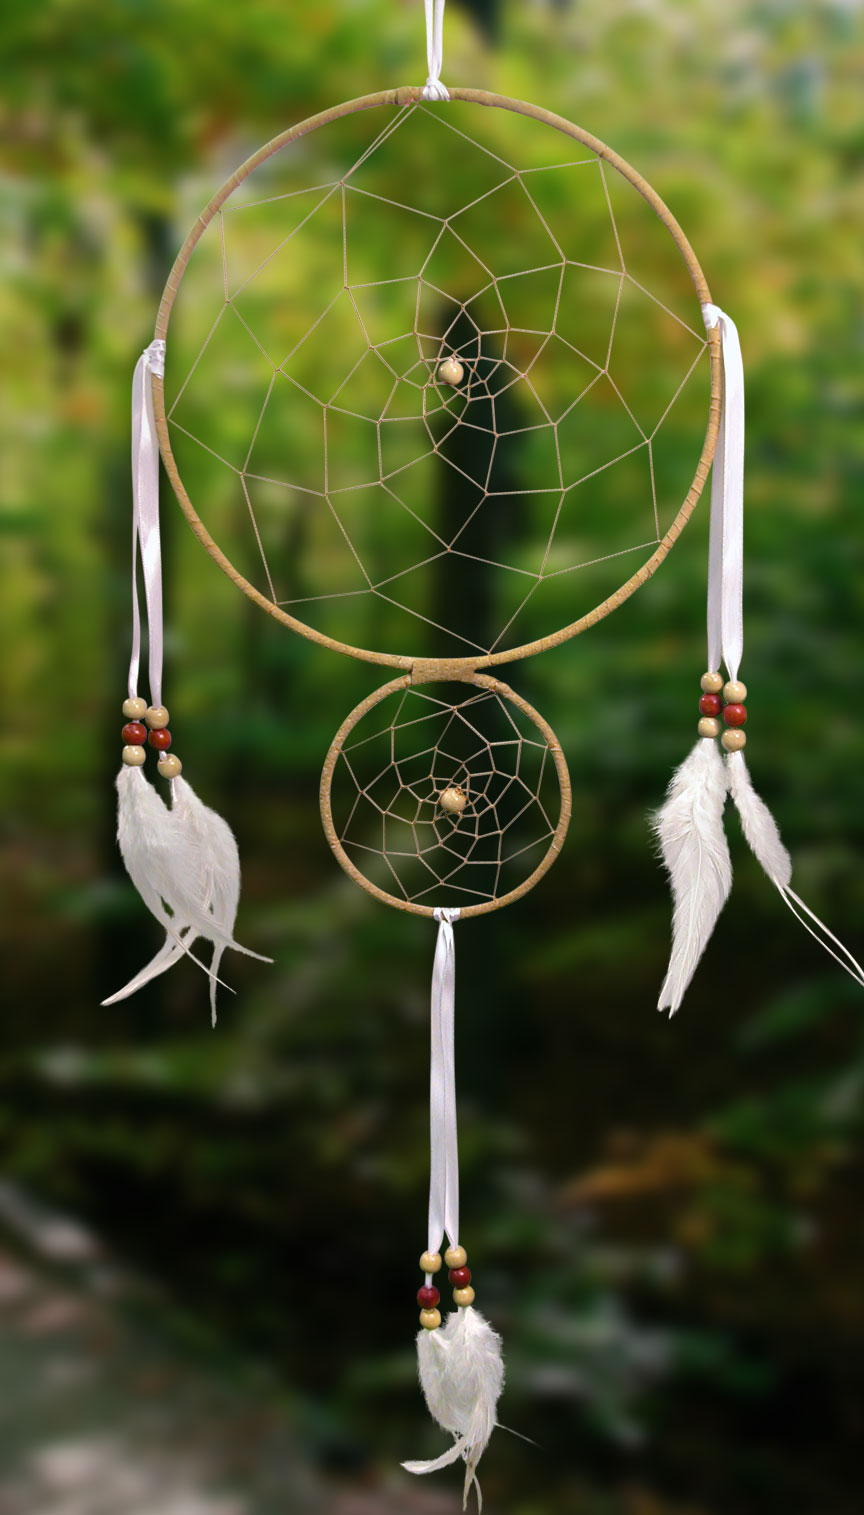 Shows an image of dreamcatcher owg001 on a scenic background